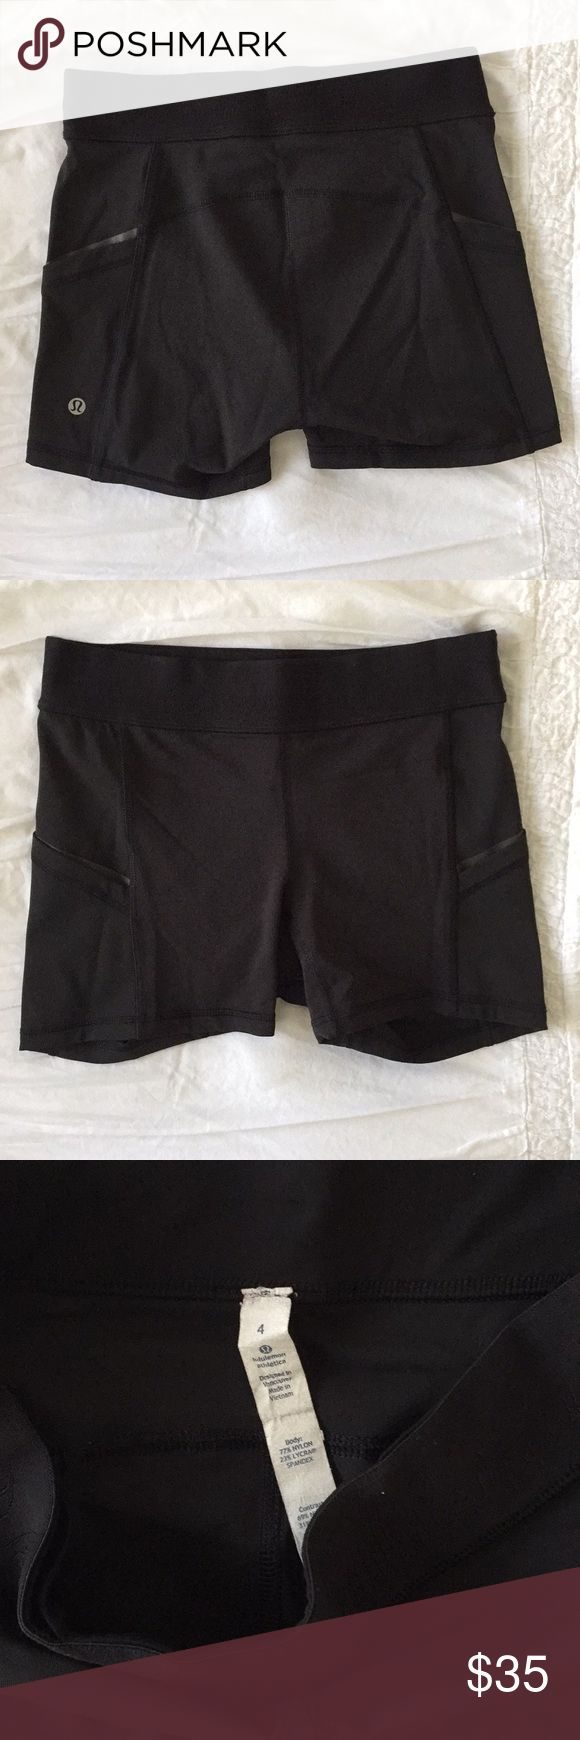 Black Lululemon Shorts Super comfortable and cute black Lululemon shorts with two side pockets. Size 4. I'm a size 2-4 in lulus and these fit perfectly. Lululemon athletica and login on waistband and Lululemon stamp on the back. Gently worn. lululemon athletica Shorts